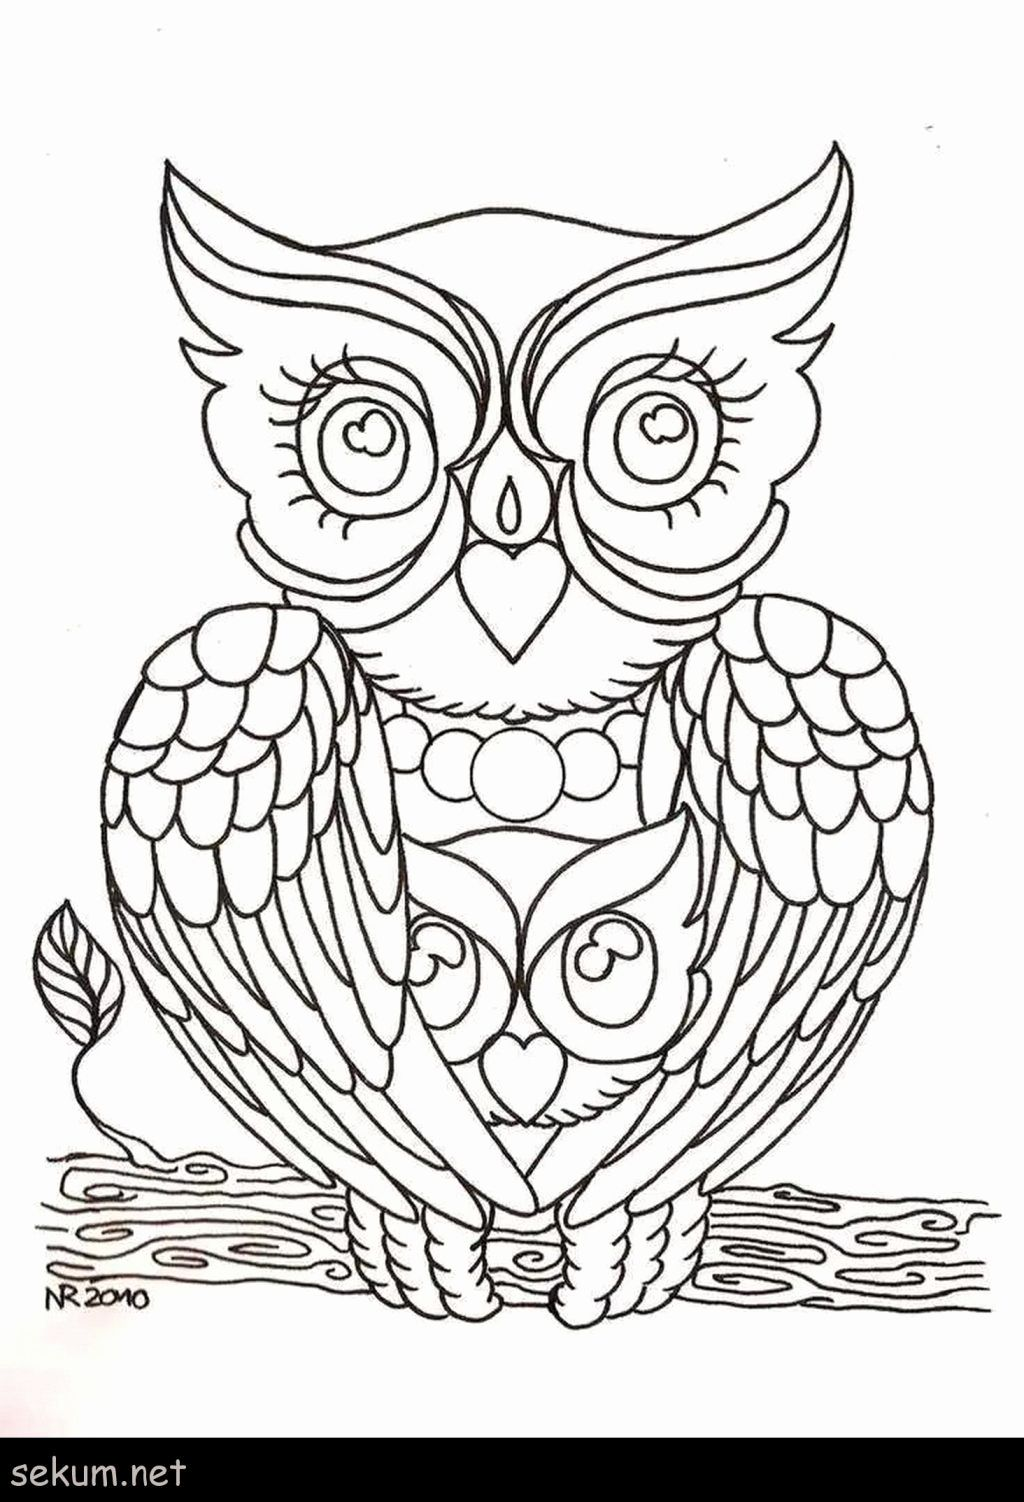 Hard Coloring Owl Pages For Kids Owl Coloring Pages Coloring Pages Coloring Books